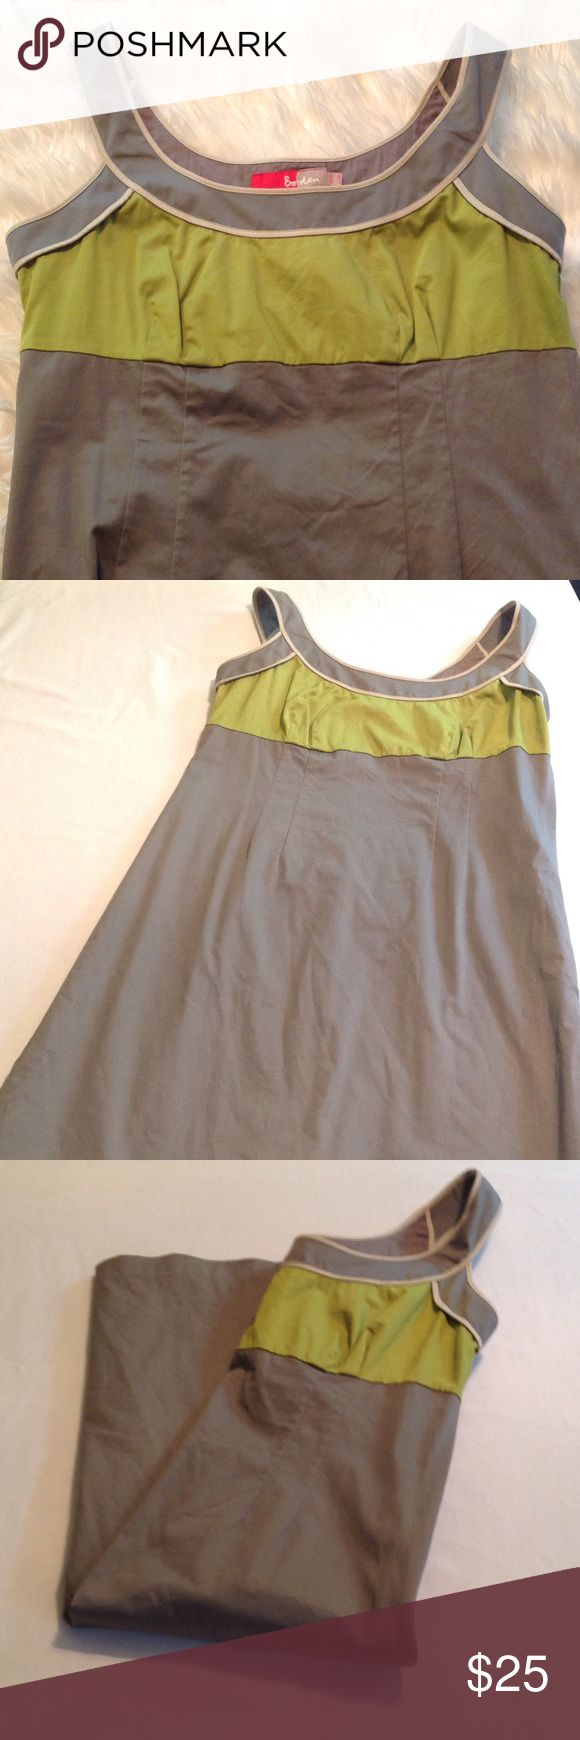 Boden dress Gray and green boden dress. Zipper on side and small slit in back. 97% cotton 3% Elastane and liner is 100% cotton. (C) Boden Dresses